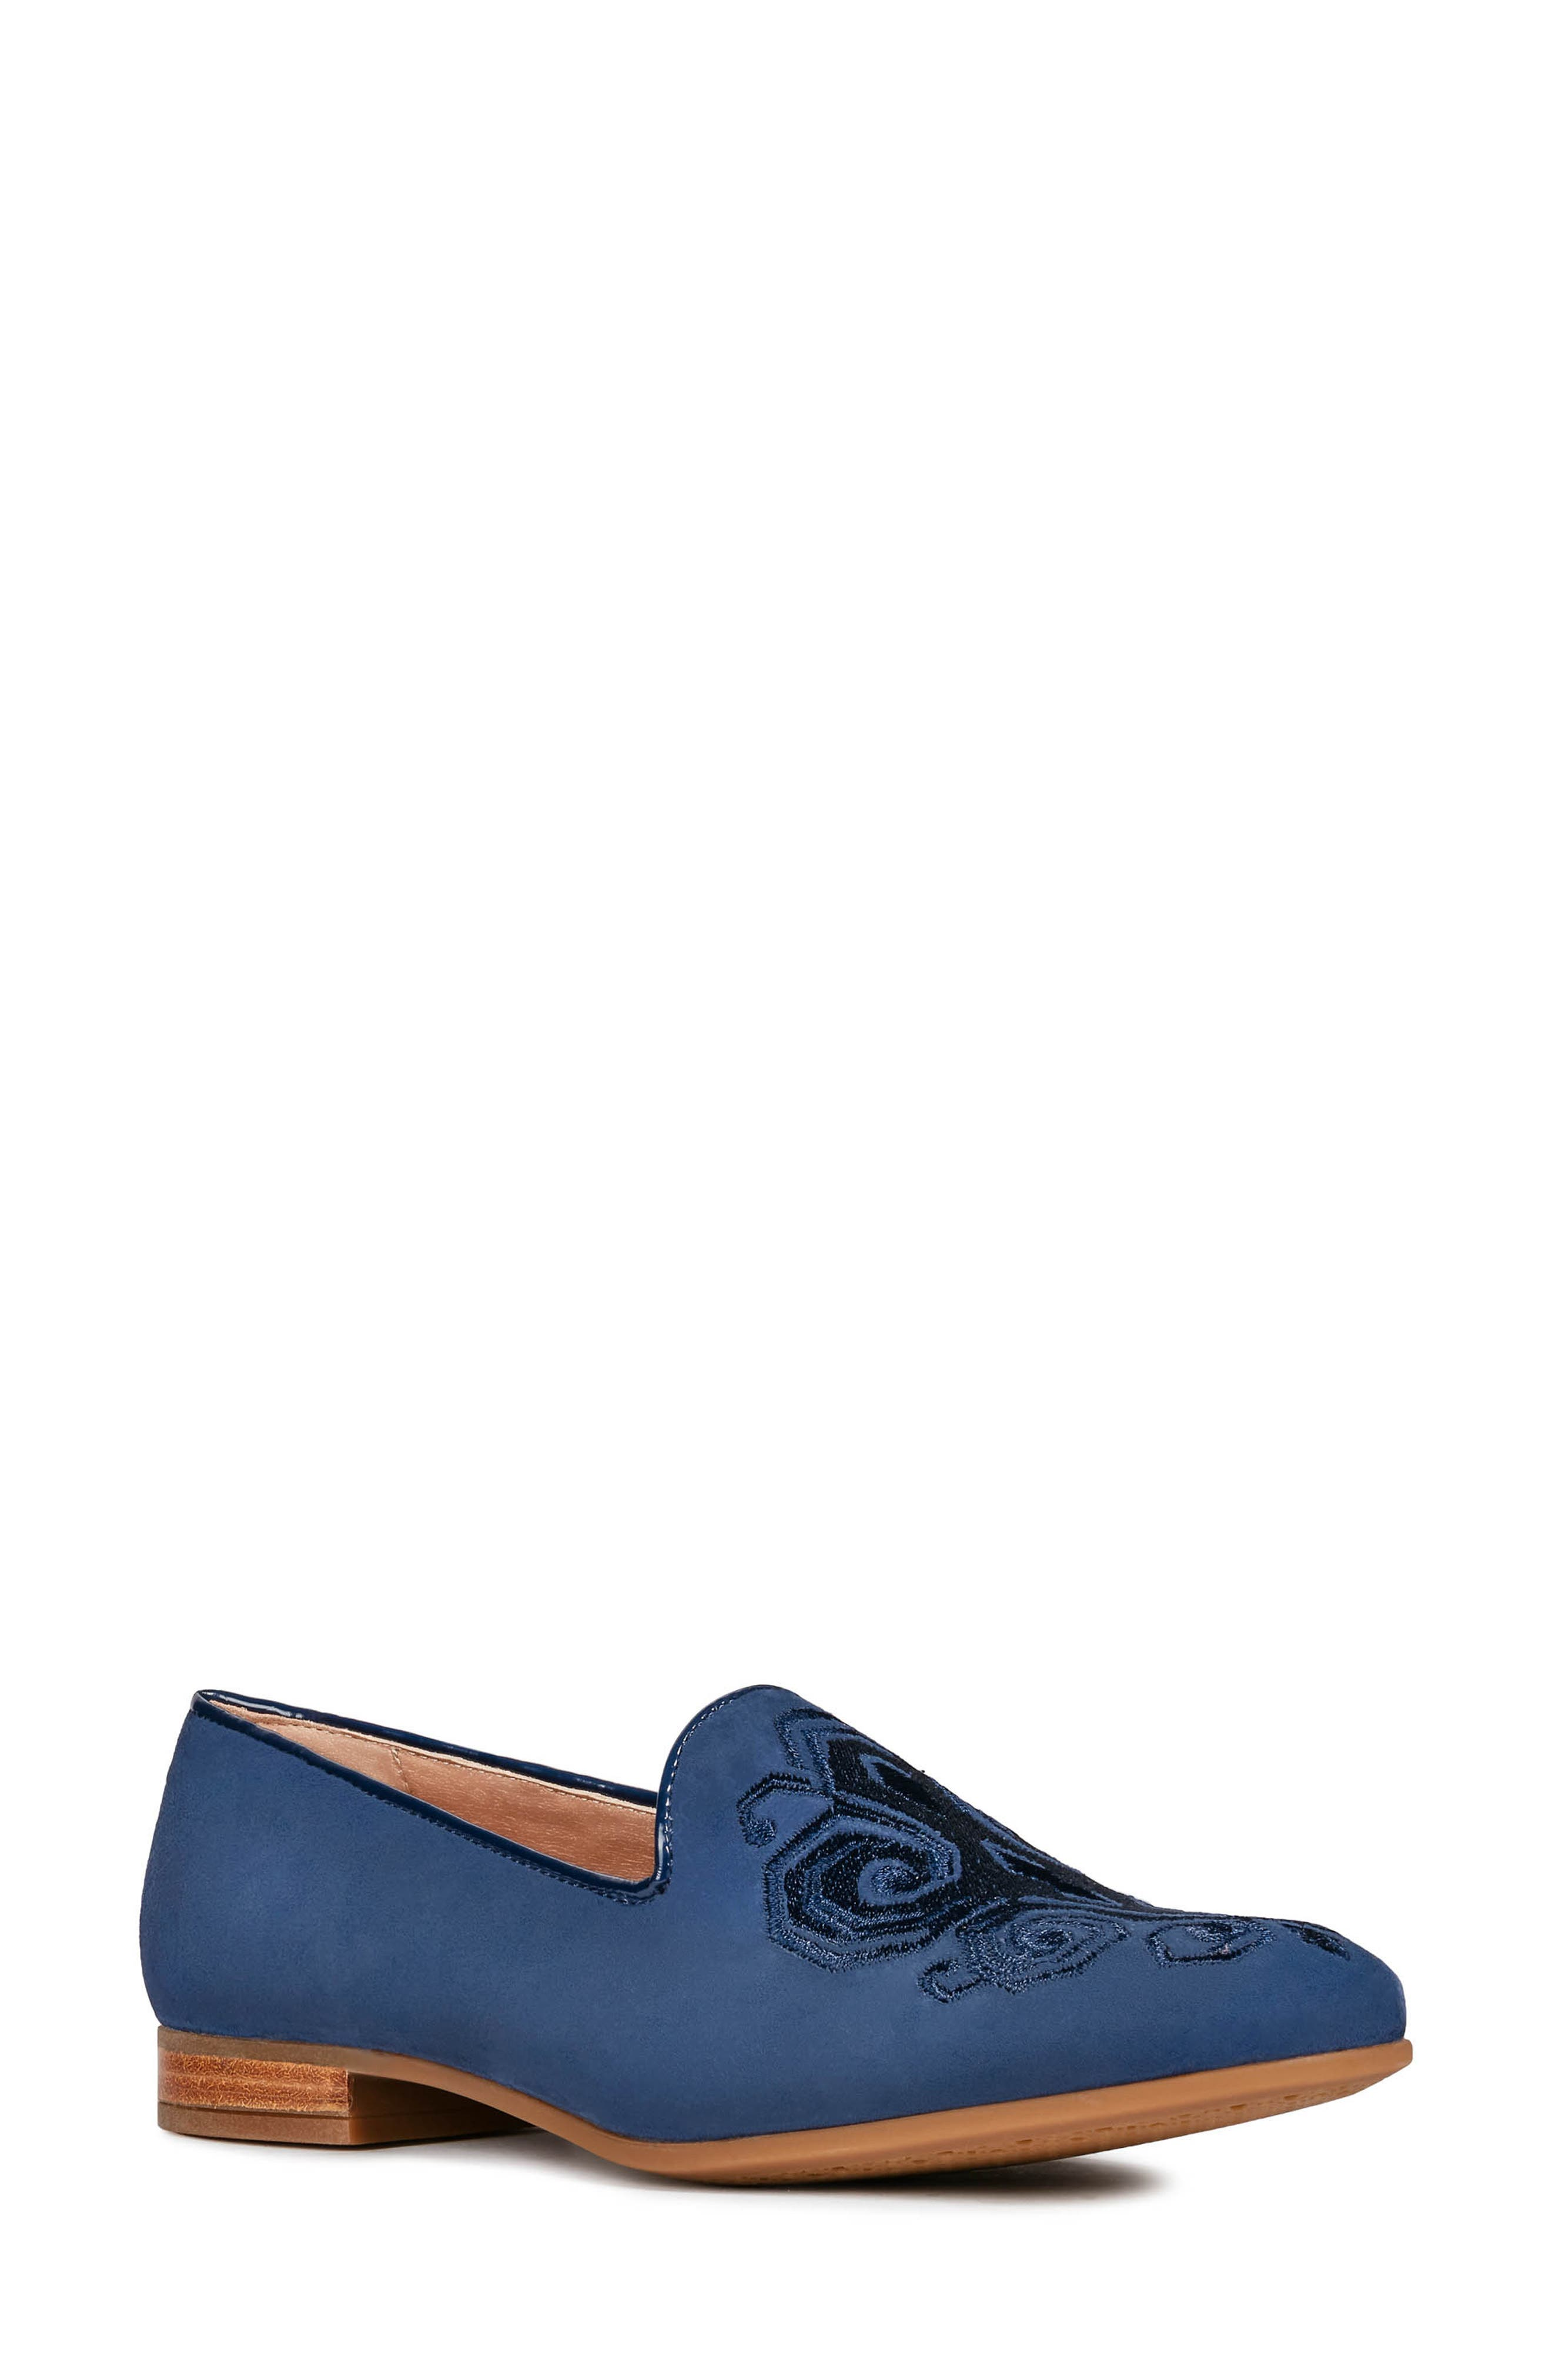 GEOX, Marlyna Loafer, Main thumbnail 1, color, BLUE SUEDE